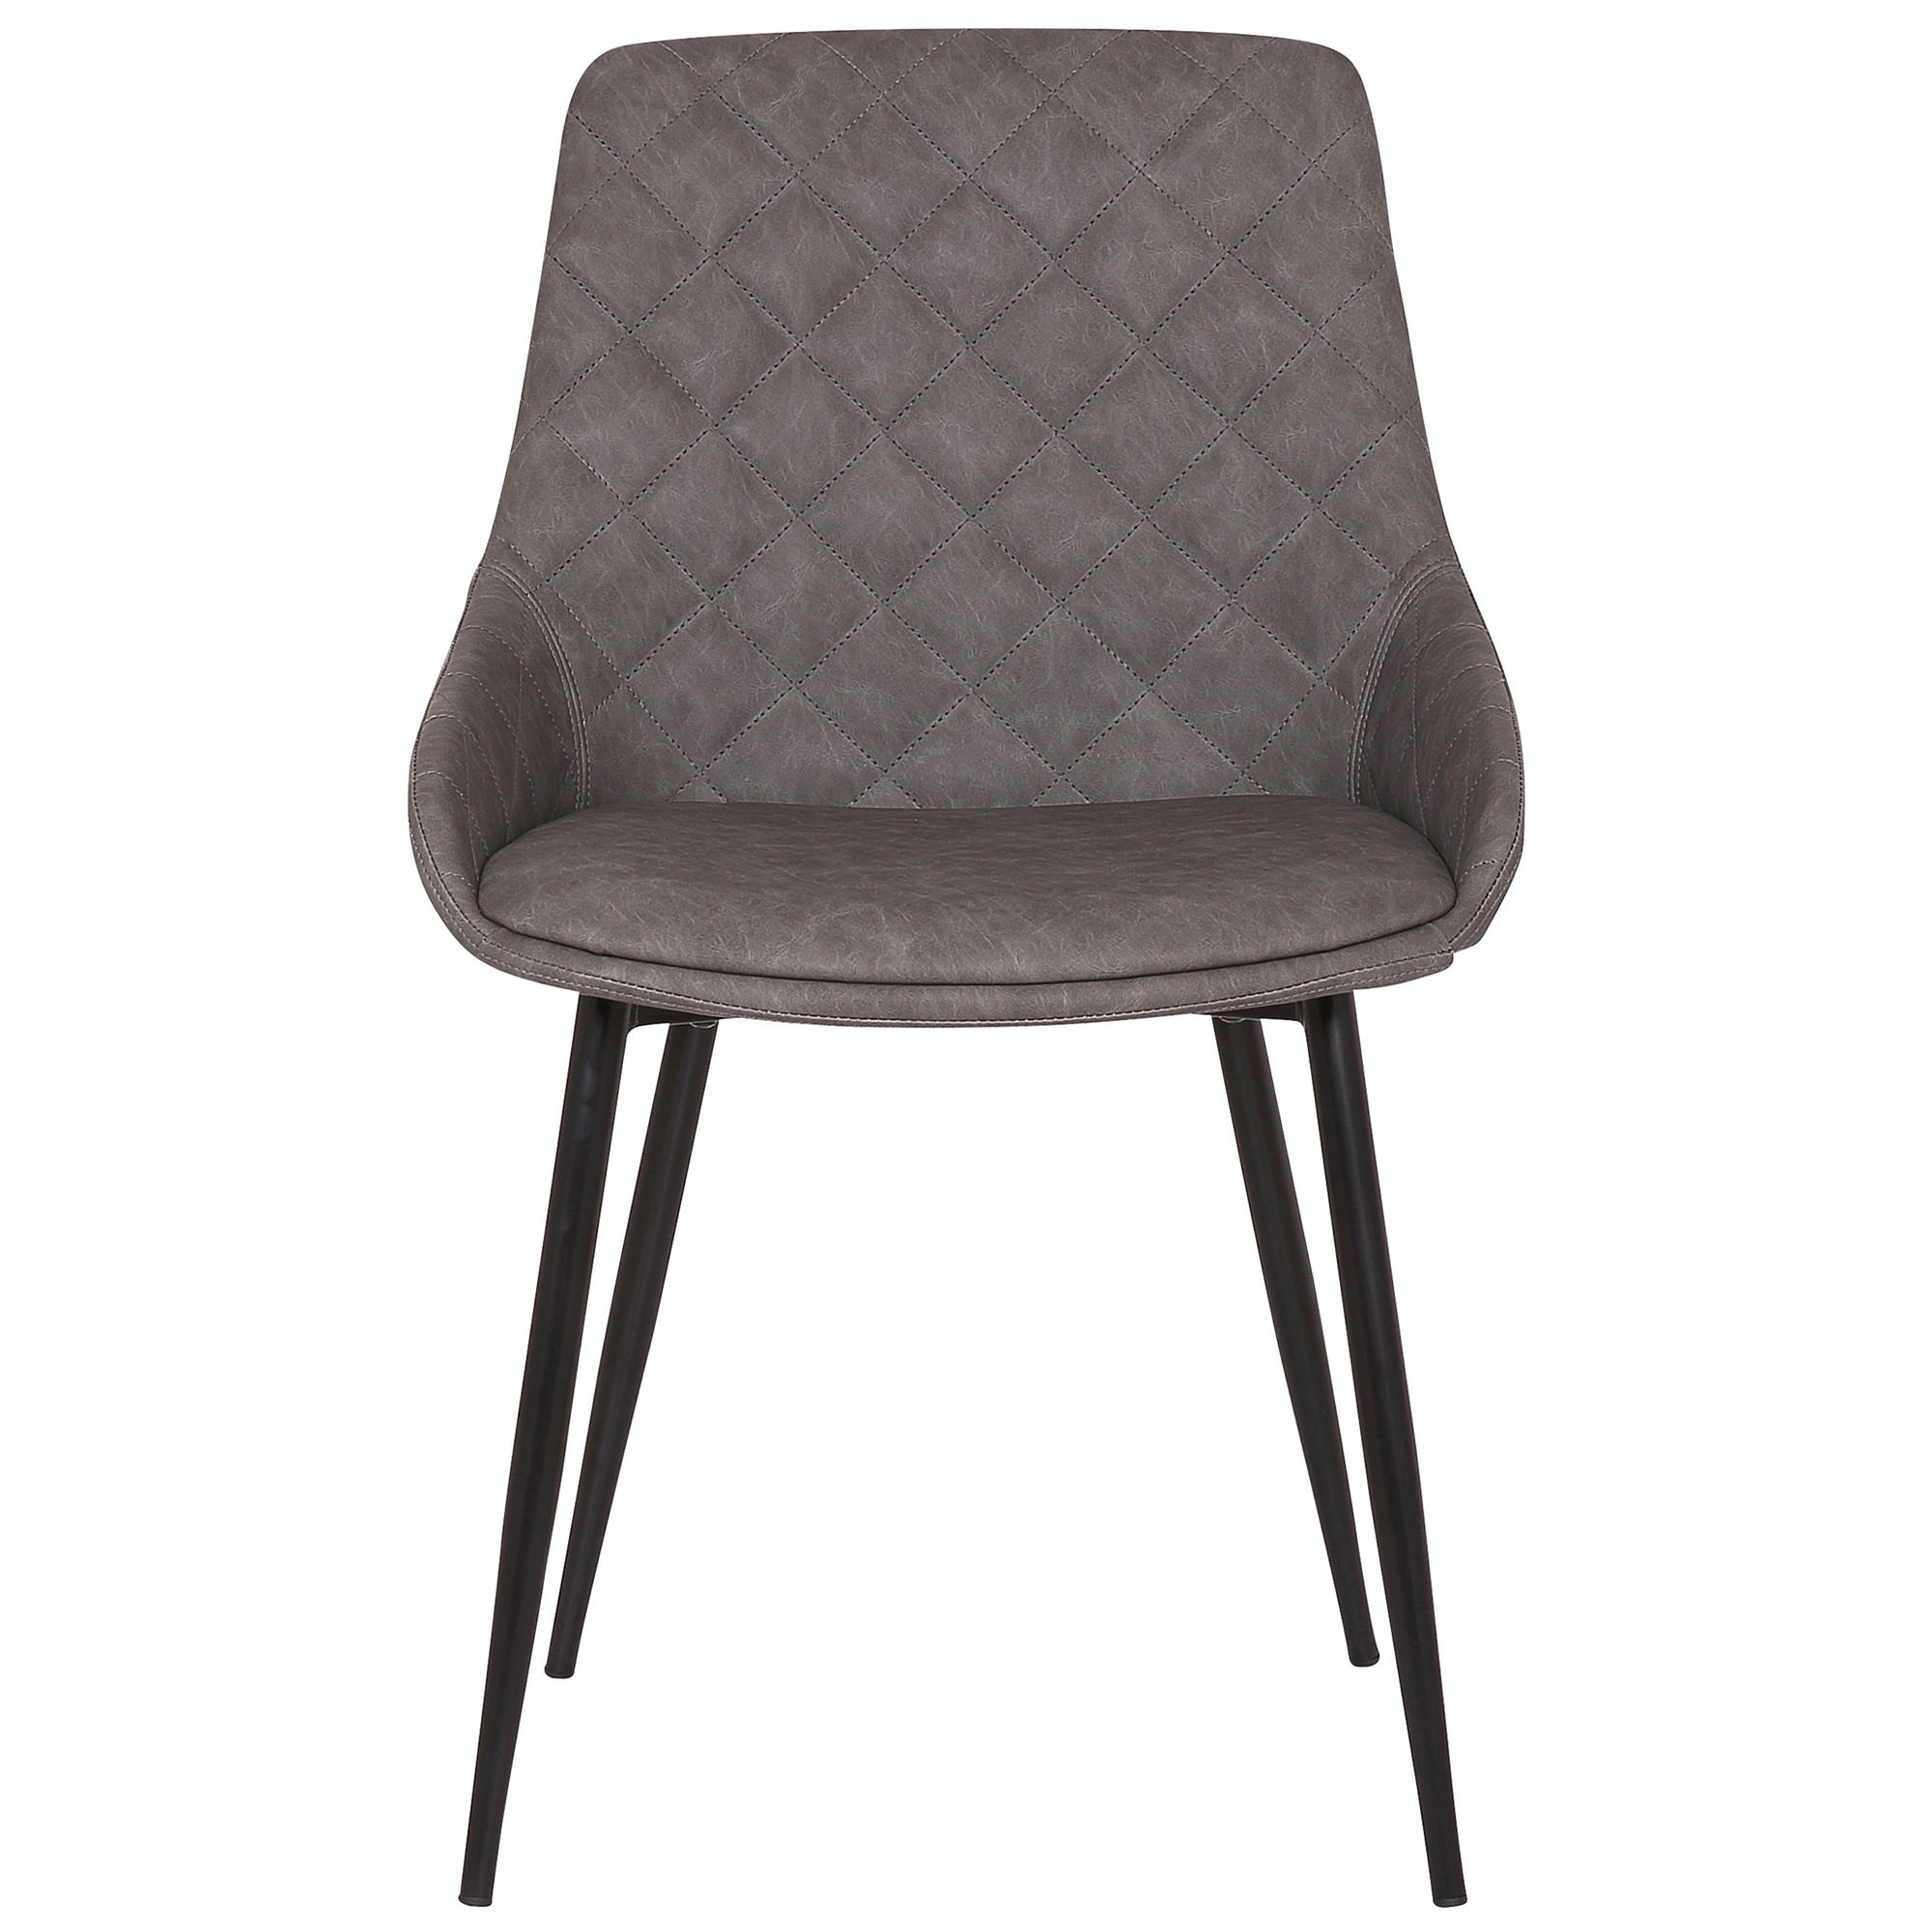 Lago Commercial Grade Faux Leather Dining Chair, Grey